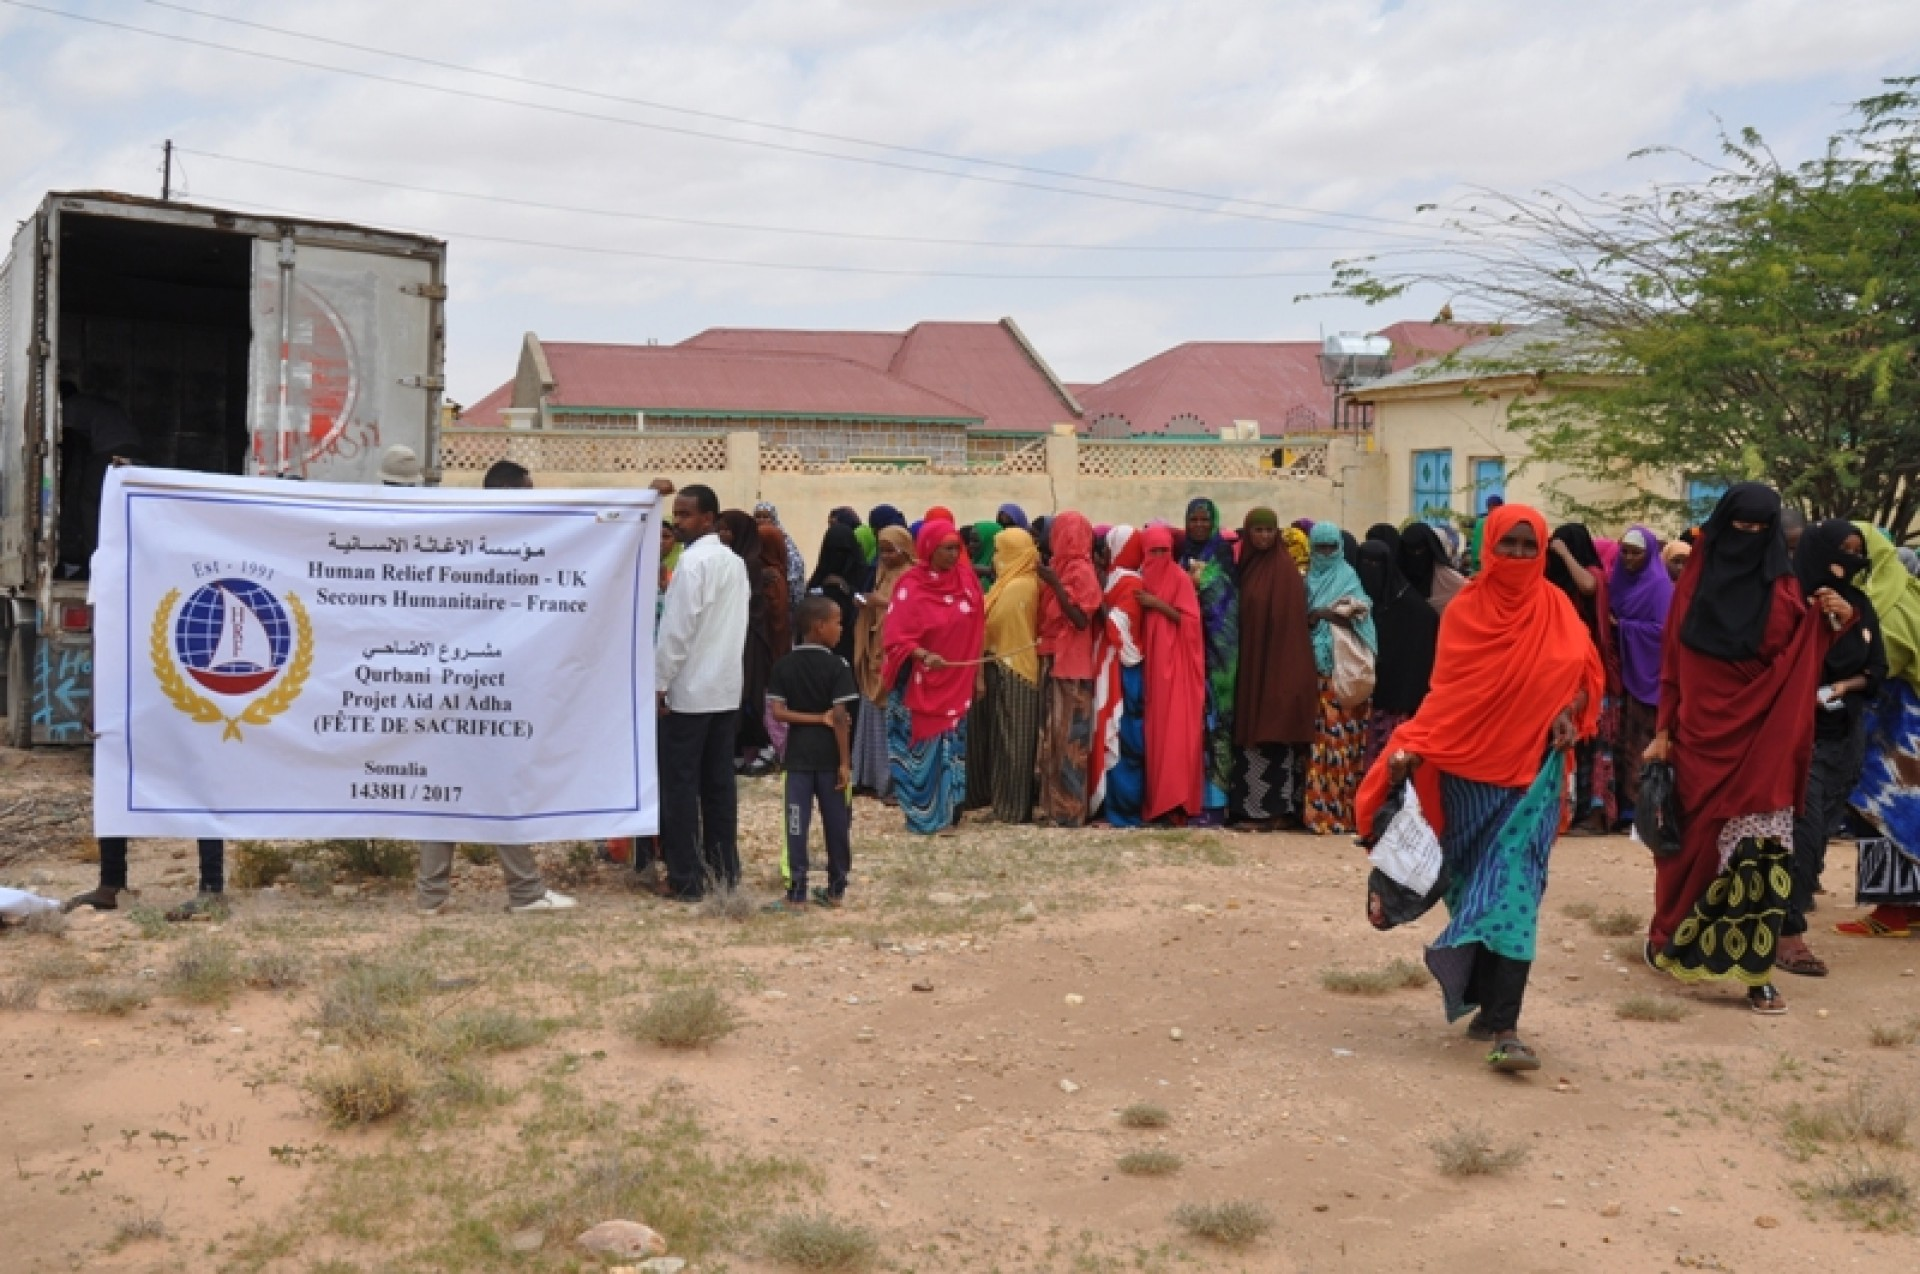 Djibouti Qurbani Human Relief Foundation